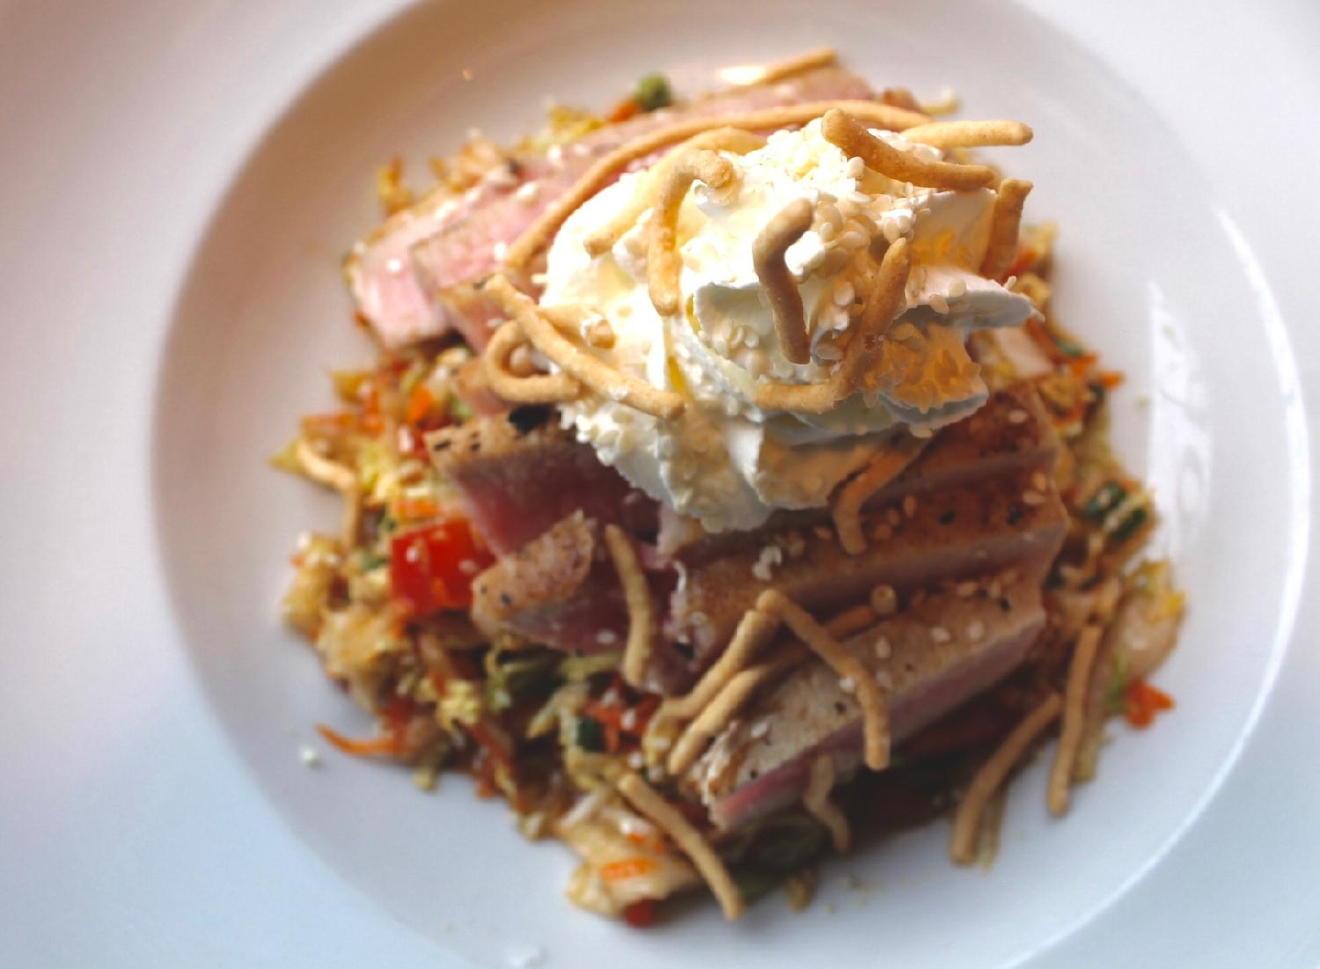 Seared Ahi Tuna : Aerated wasabi cream, Napa cabbage, carrots, red bell peppers, scallions, ginger soy dressing, and crispy chow mein noodles / Image: Rose Brewington // Published: 3.12.17